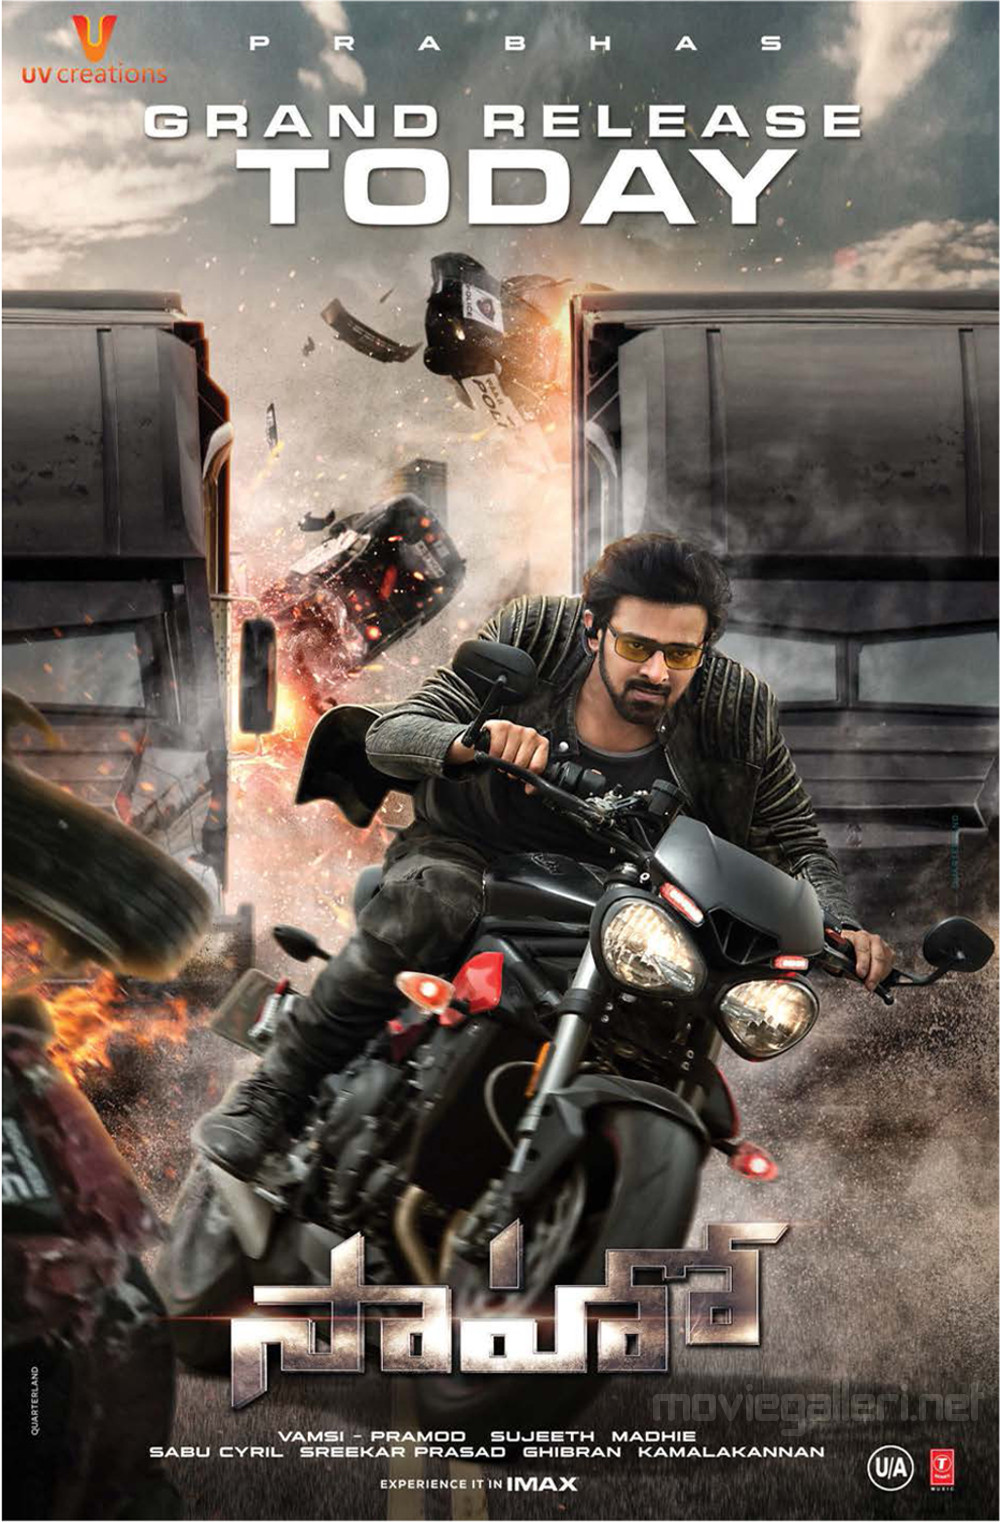 Prabhas Saaho Movie Grand Release Today Posters HD